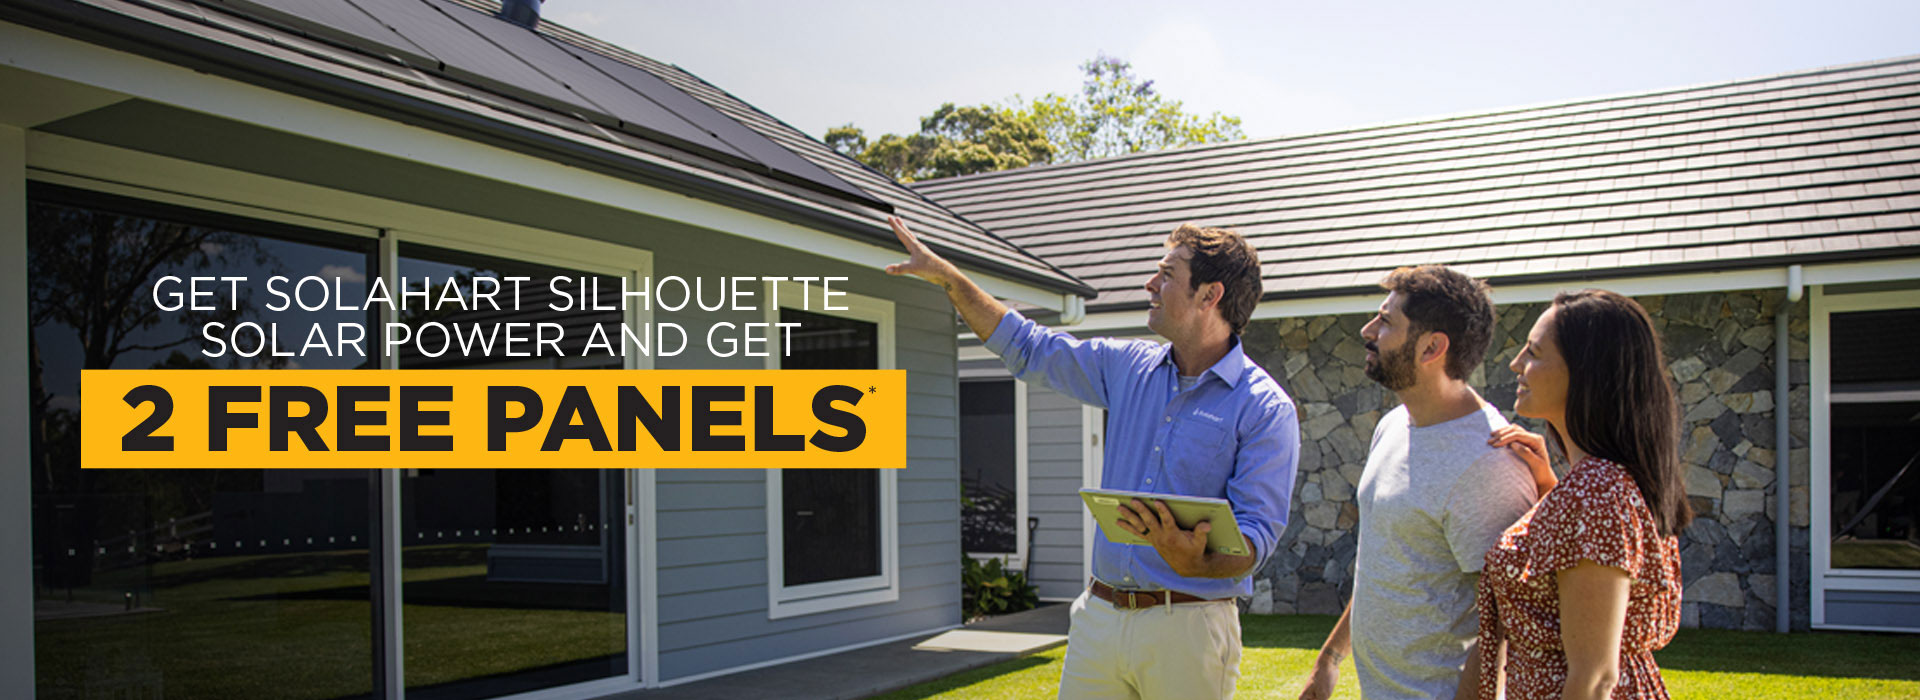 Get Solahart Silhouette Solar Power and Get 2 Free Solar Panels*